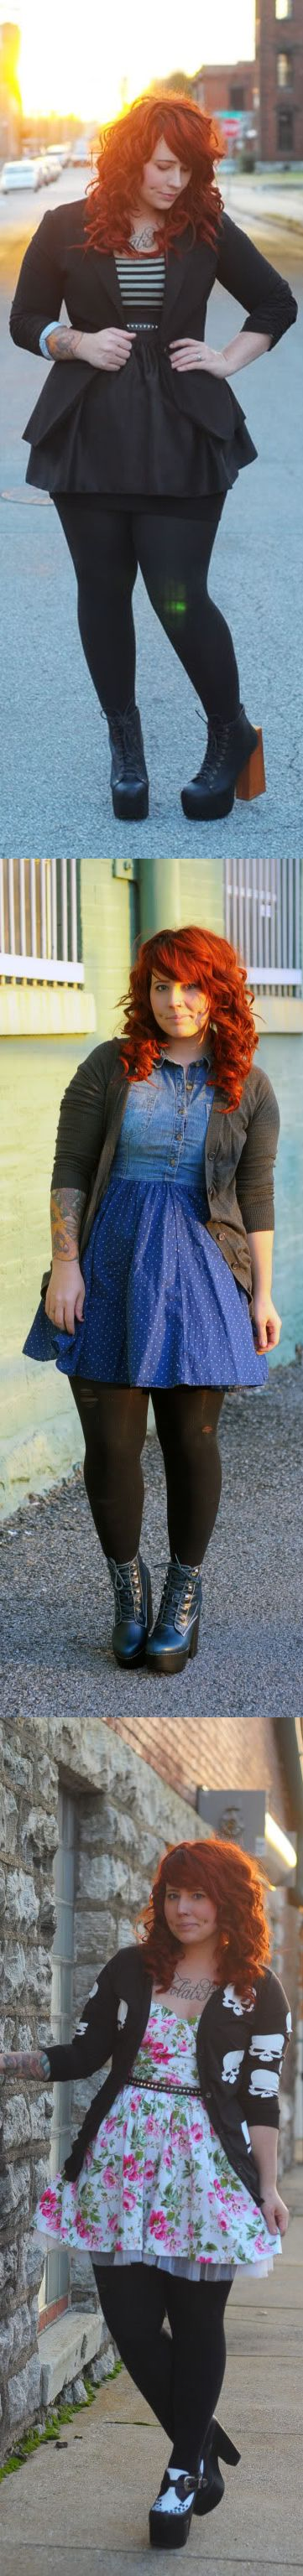 Kaelah Bee... This would be cute if I could find a similar skirt to tuck my chambray shirt into, instead of finding a new dress like that